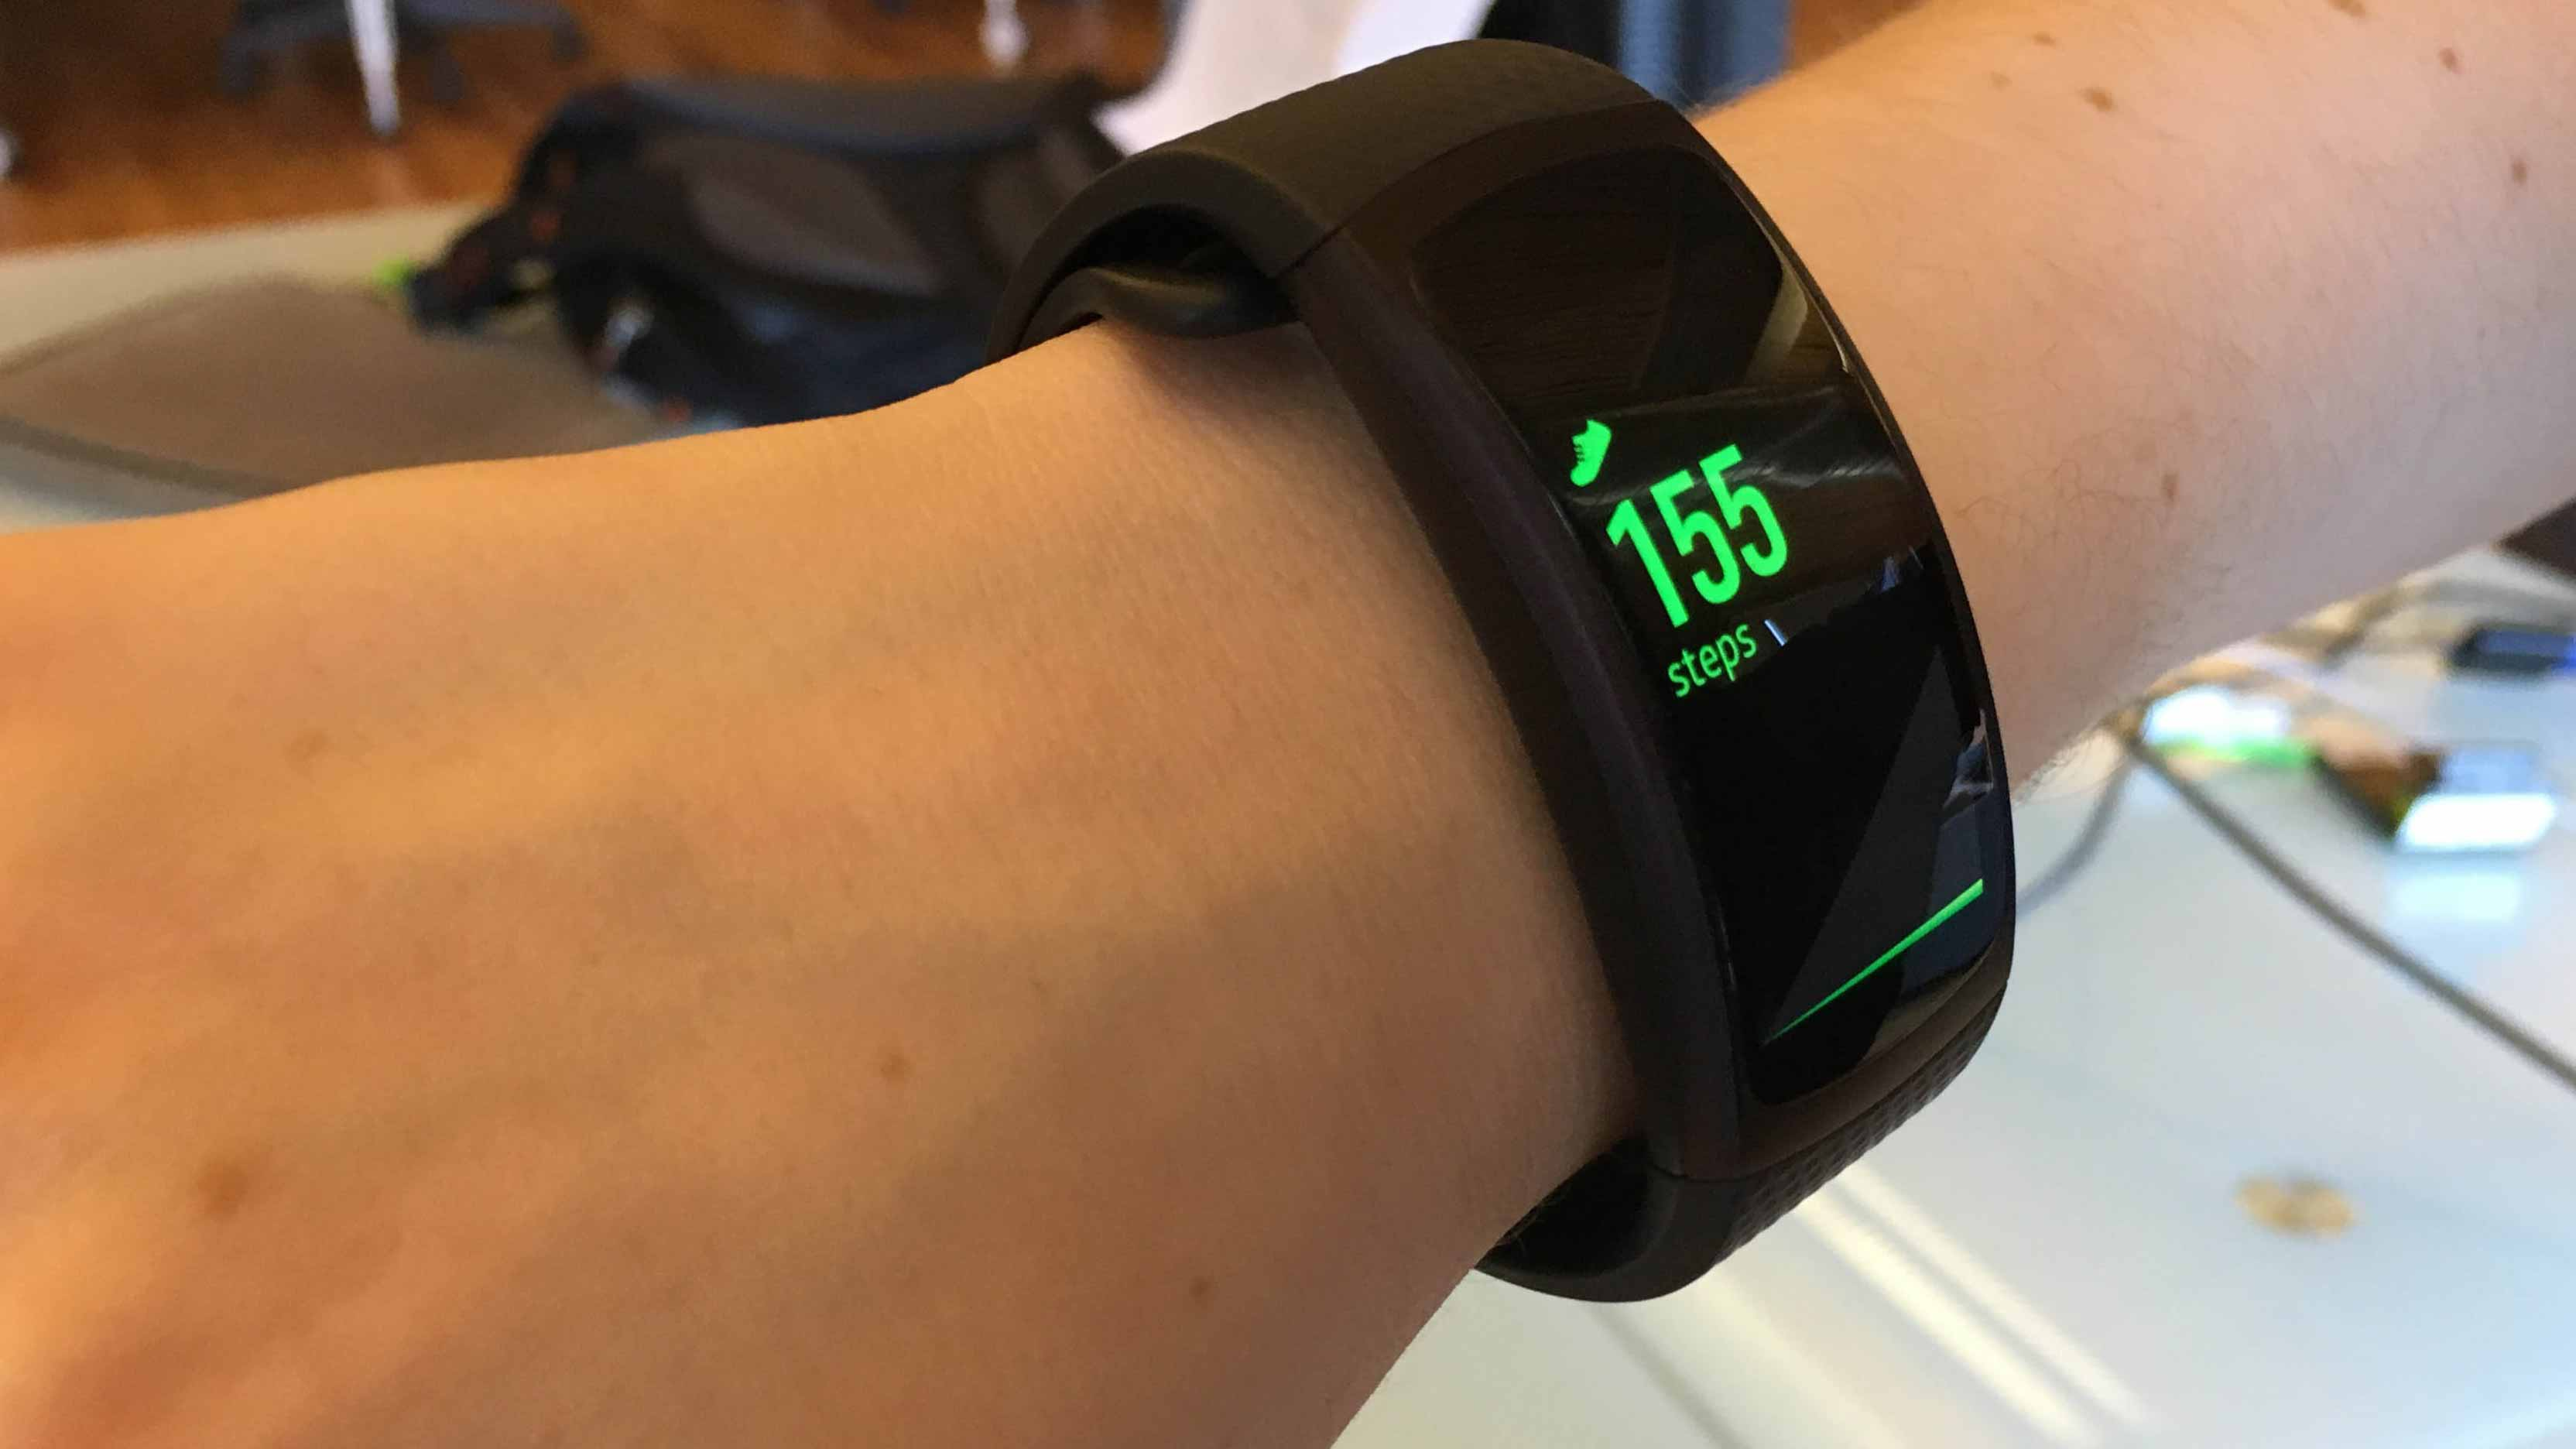 SAMSUNG GEAR FIT 2 IPHONE 5S